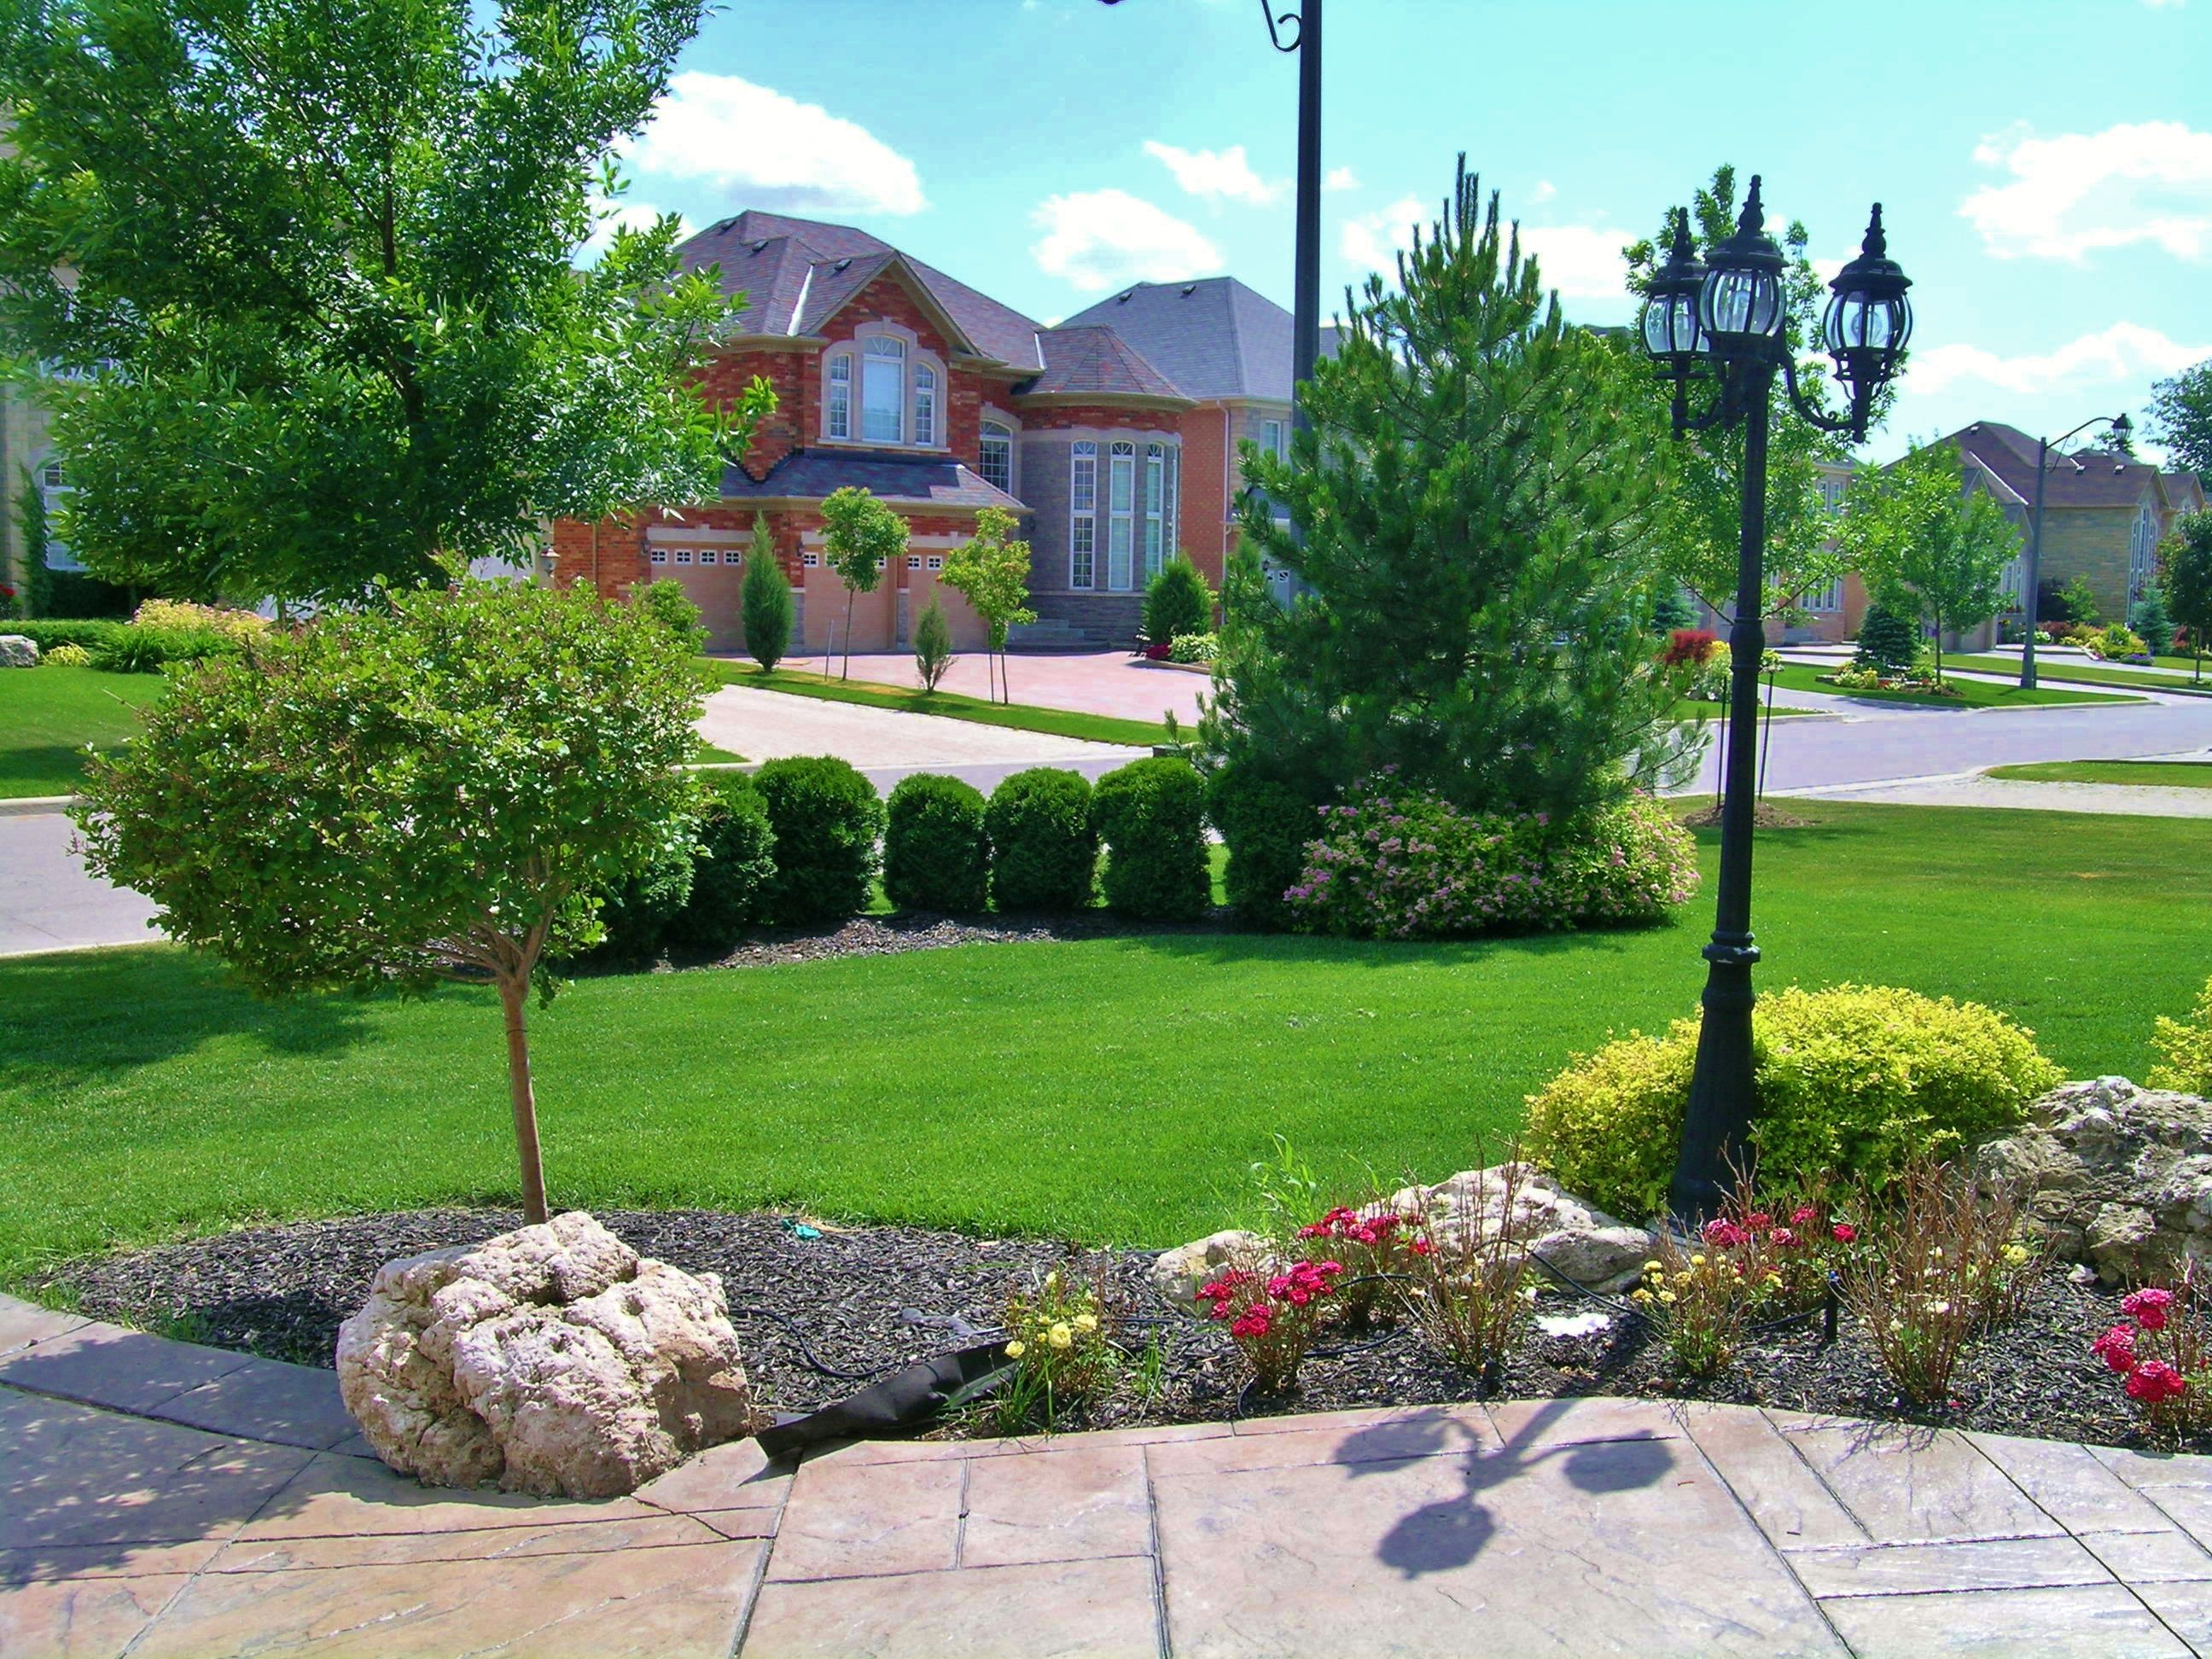 Unique Front Yard Landscaping Ideas | Front yard landscape designs ...